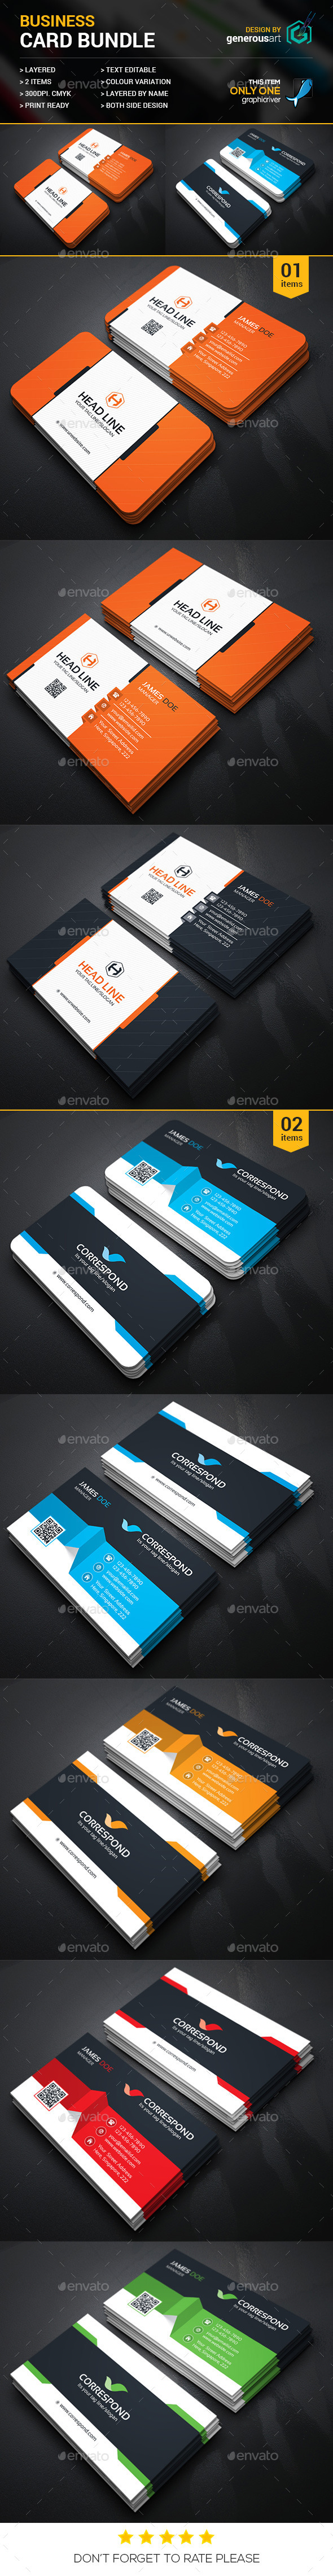 Business Card Bundle 2 in 1 3